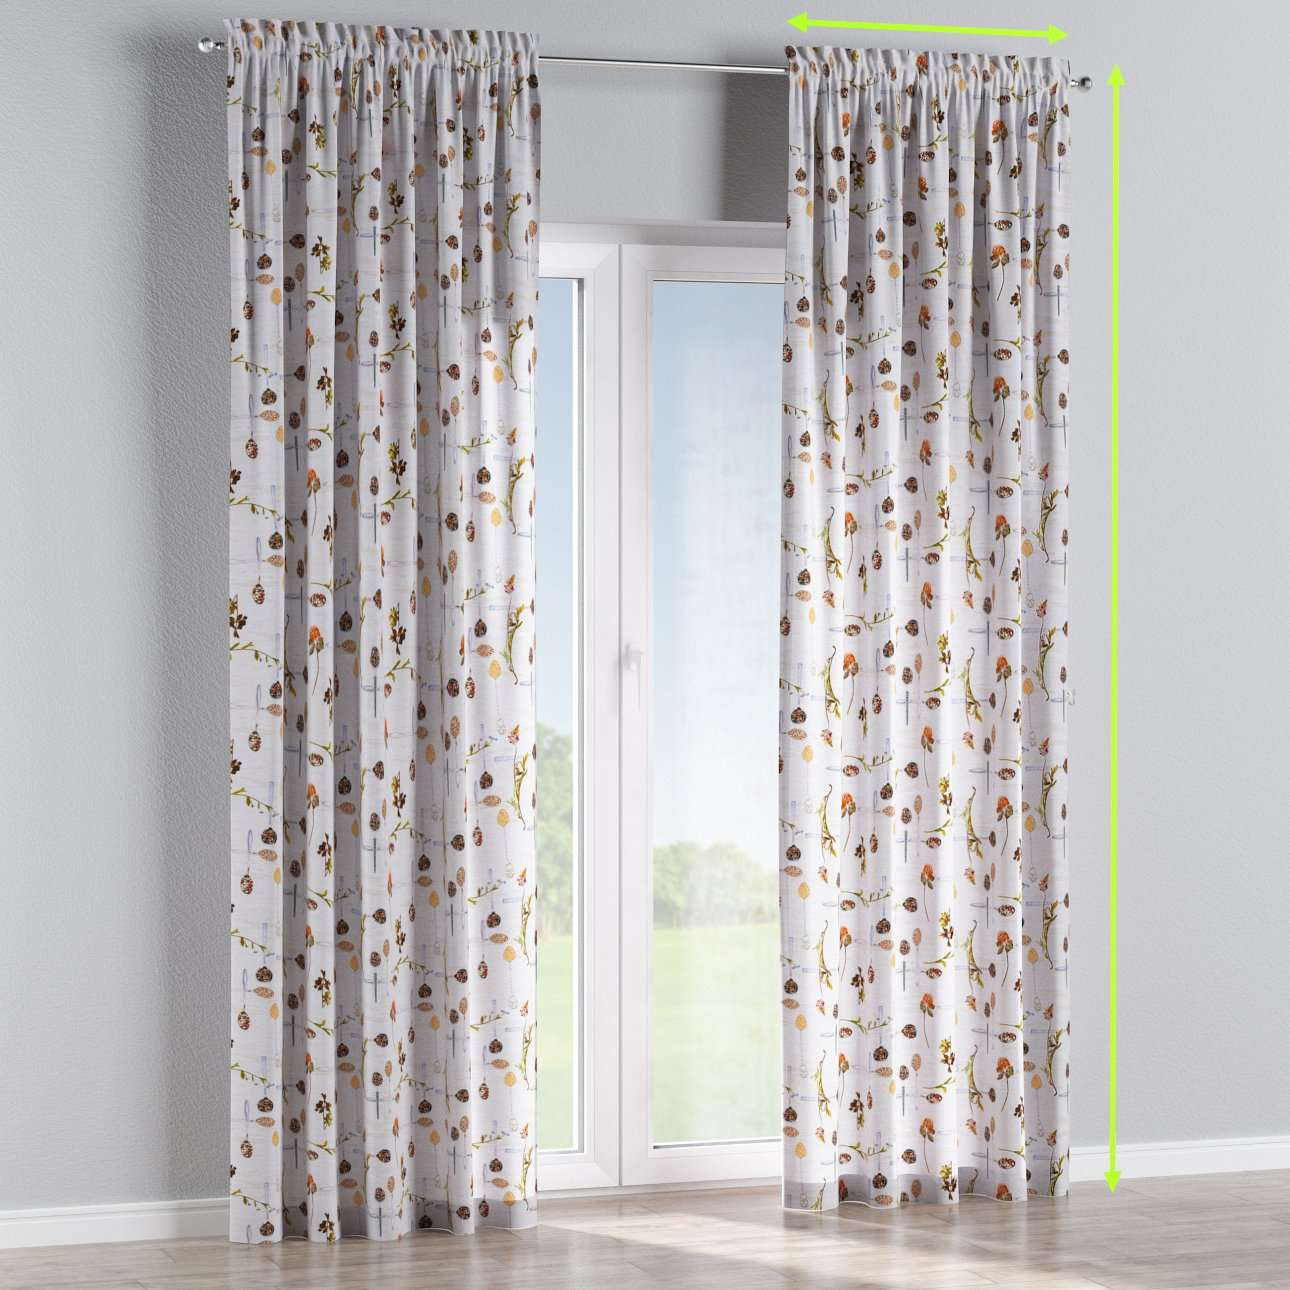 Slot and frill lined curtains in collection Flowers, fabric: 140-11